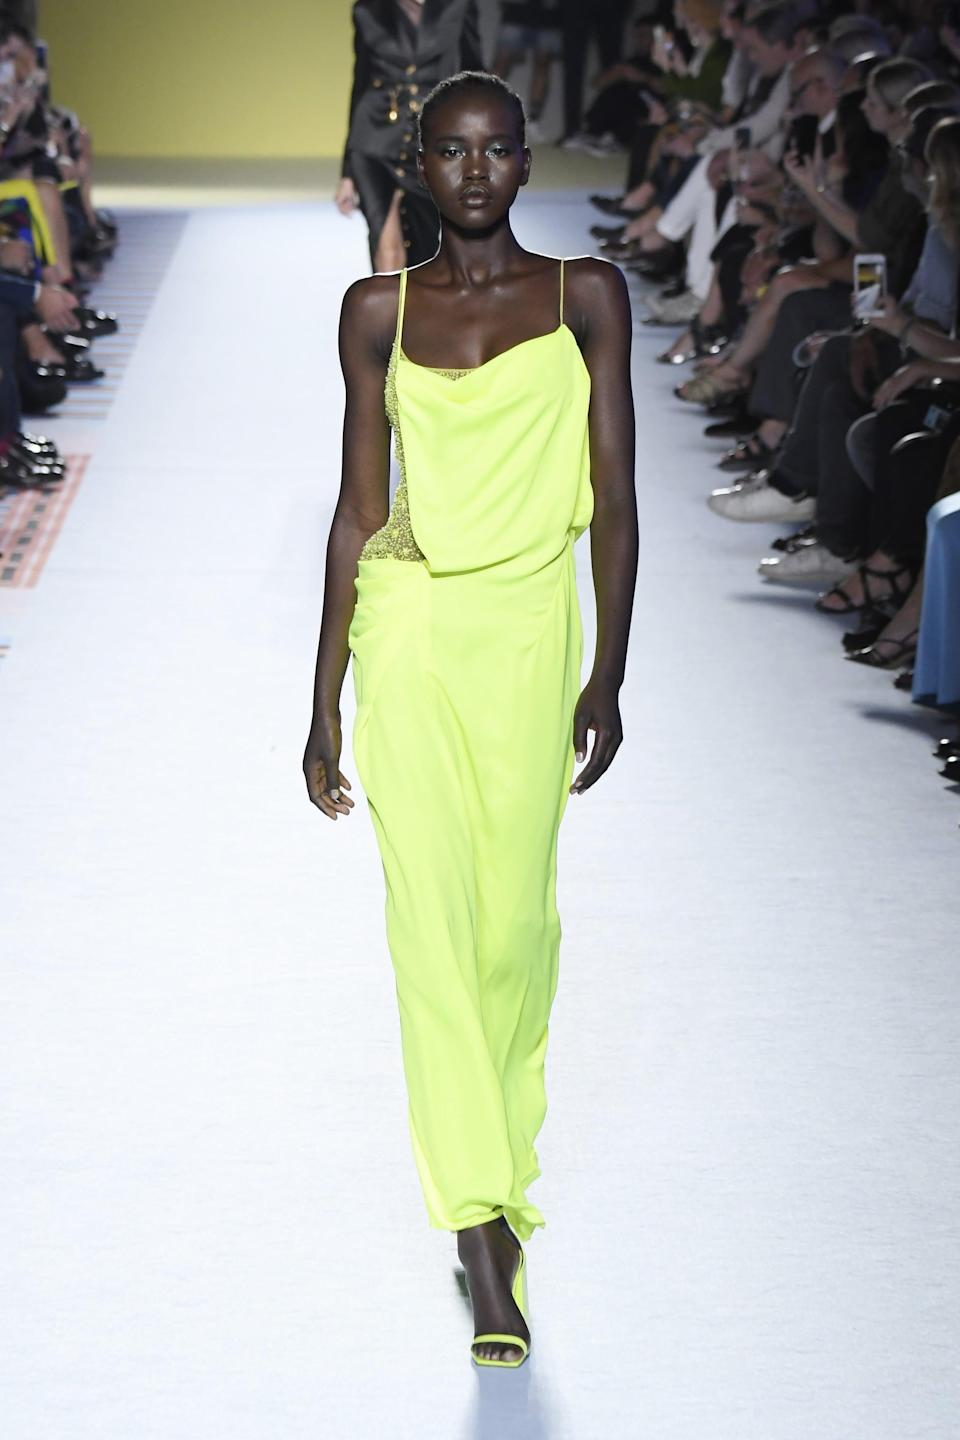 """<p>Born in a refugee camp in South Sudan, Adut Akech has not forgotten her roots as she climbs the ladder to fashion stardom. A few years after being signed at age 16, she walked in <a href=""""https://www.popsugar.com/fashion/Saint-Laurent-Spring-2017-Collection-42467446"""" class=""""link rapid-noclick-resp"""" rel=""""nofollow noopener"""" target=""""_blank"""" data-ylk=""""slk:Saint Laurent's Spring 2017 show"""">Saint Laurent's Spring 2017 show</a>, her breakout moment. Her career has since skyrocketed, closing shows for Valentino and Alexander McQueen and appearing on the covers of <strong>i-D</strong>, <strong>British Vogue</strong>, and other publications.</p>"""